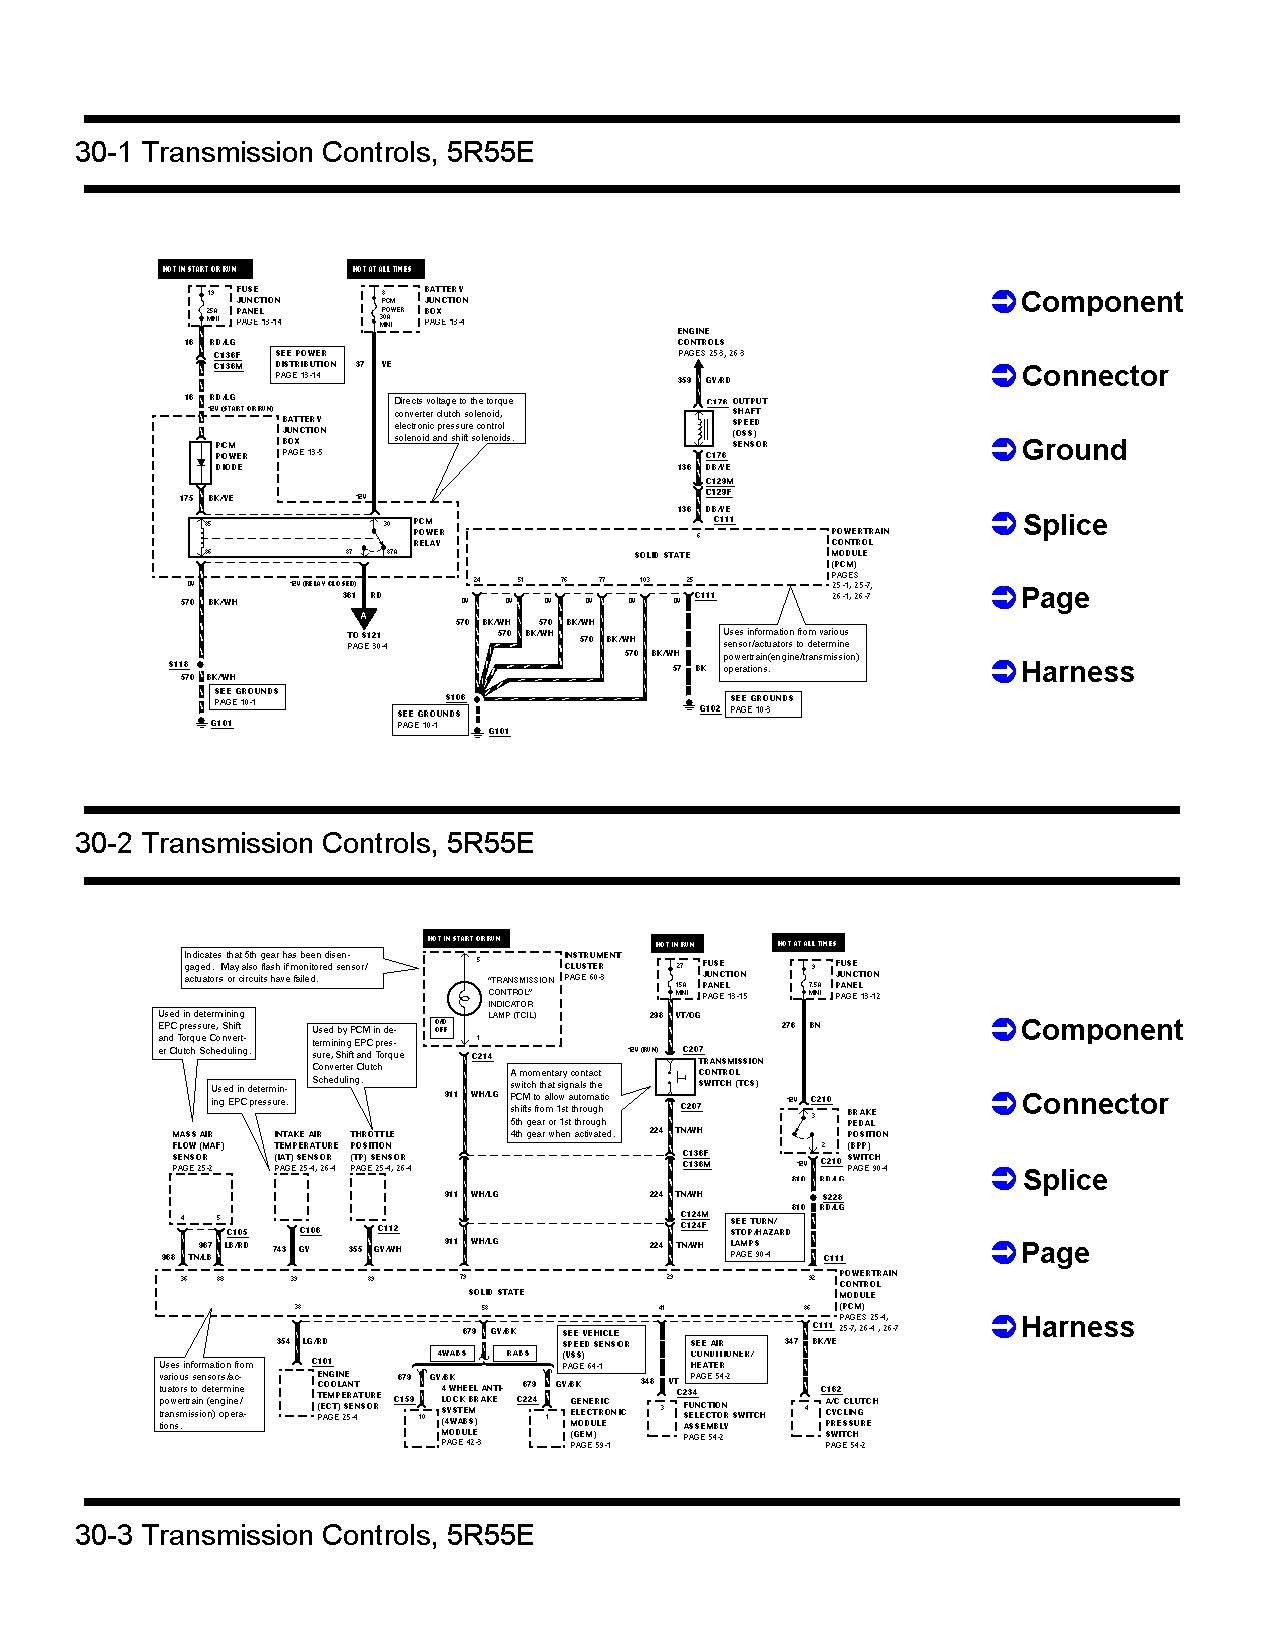 5r55e diagram learn wiring diagram effectively u2022 rh thegadgetgurus co Transmission Wiring Harness Cannon Plugs E40D Transmission Wiring Harness